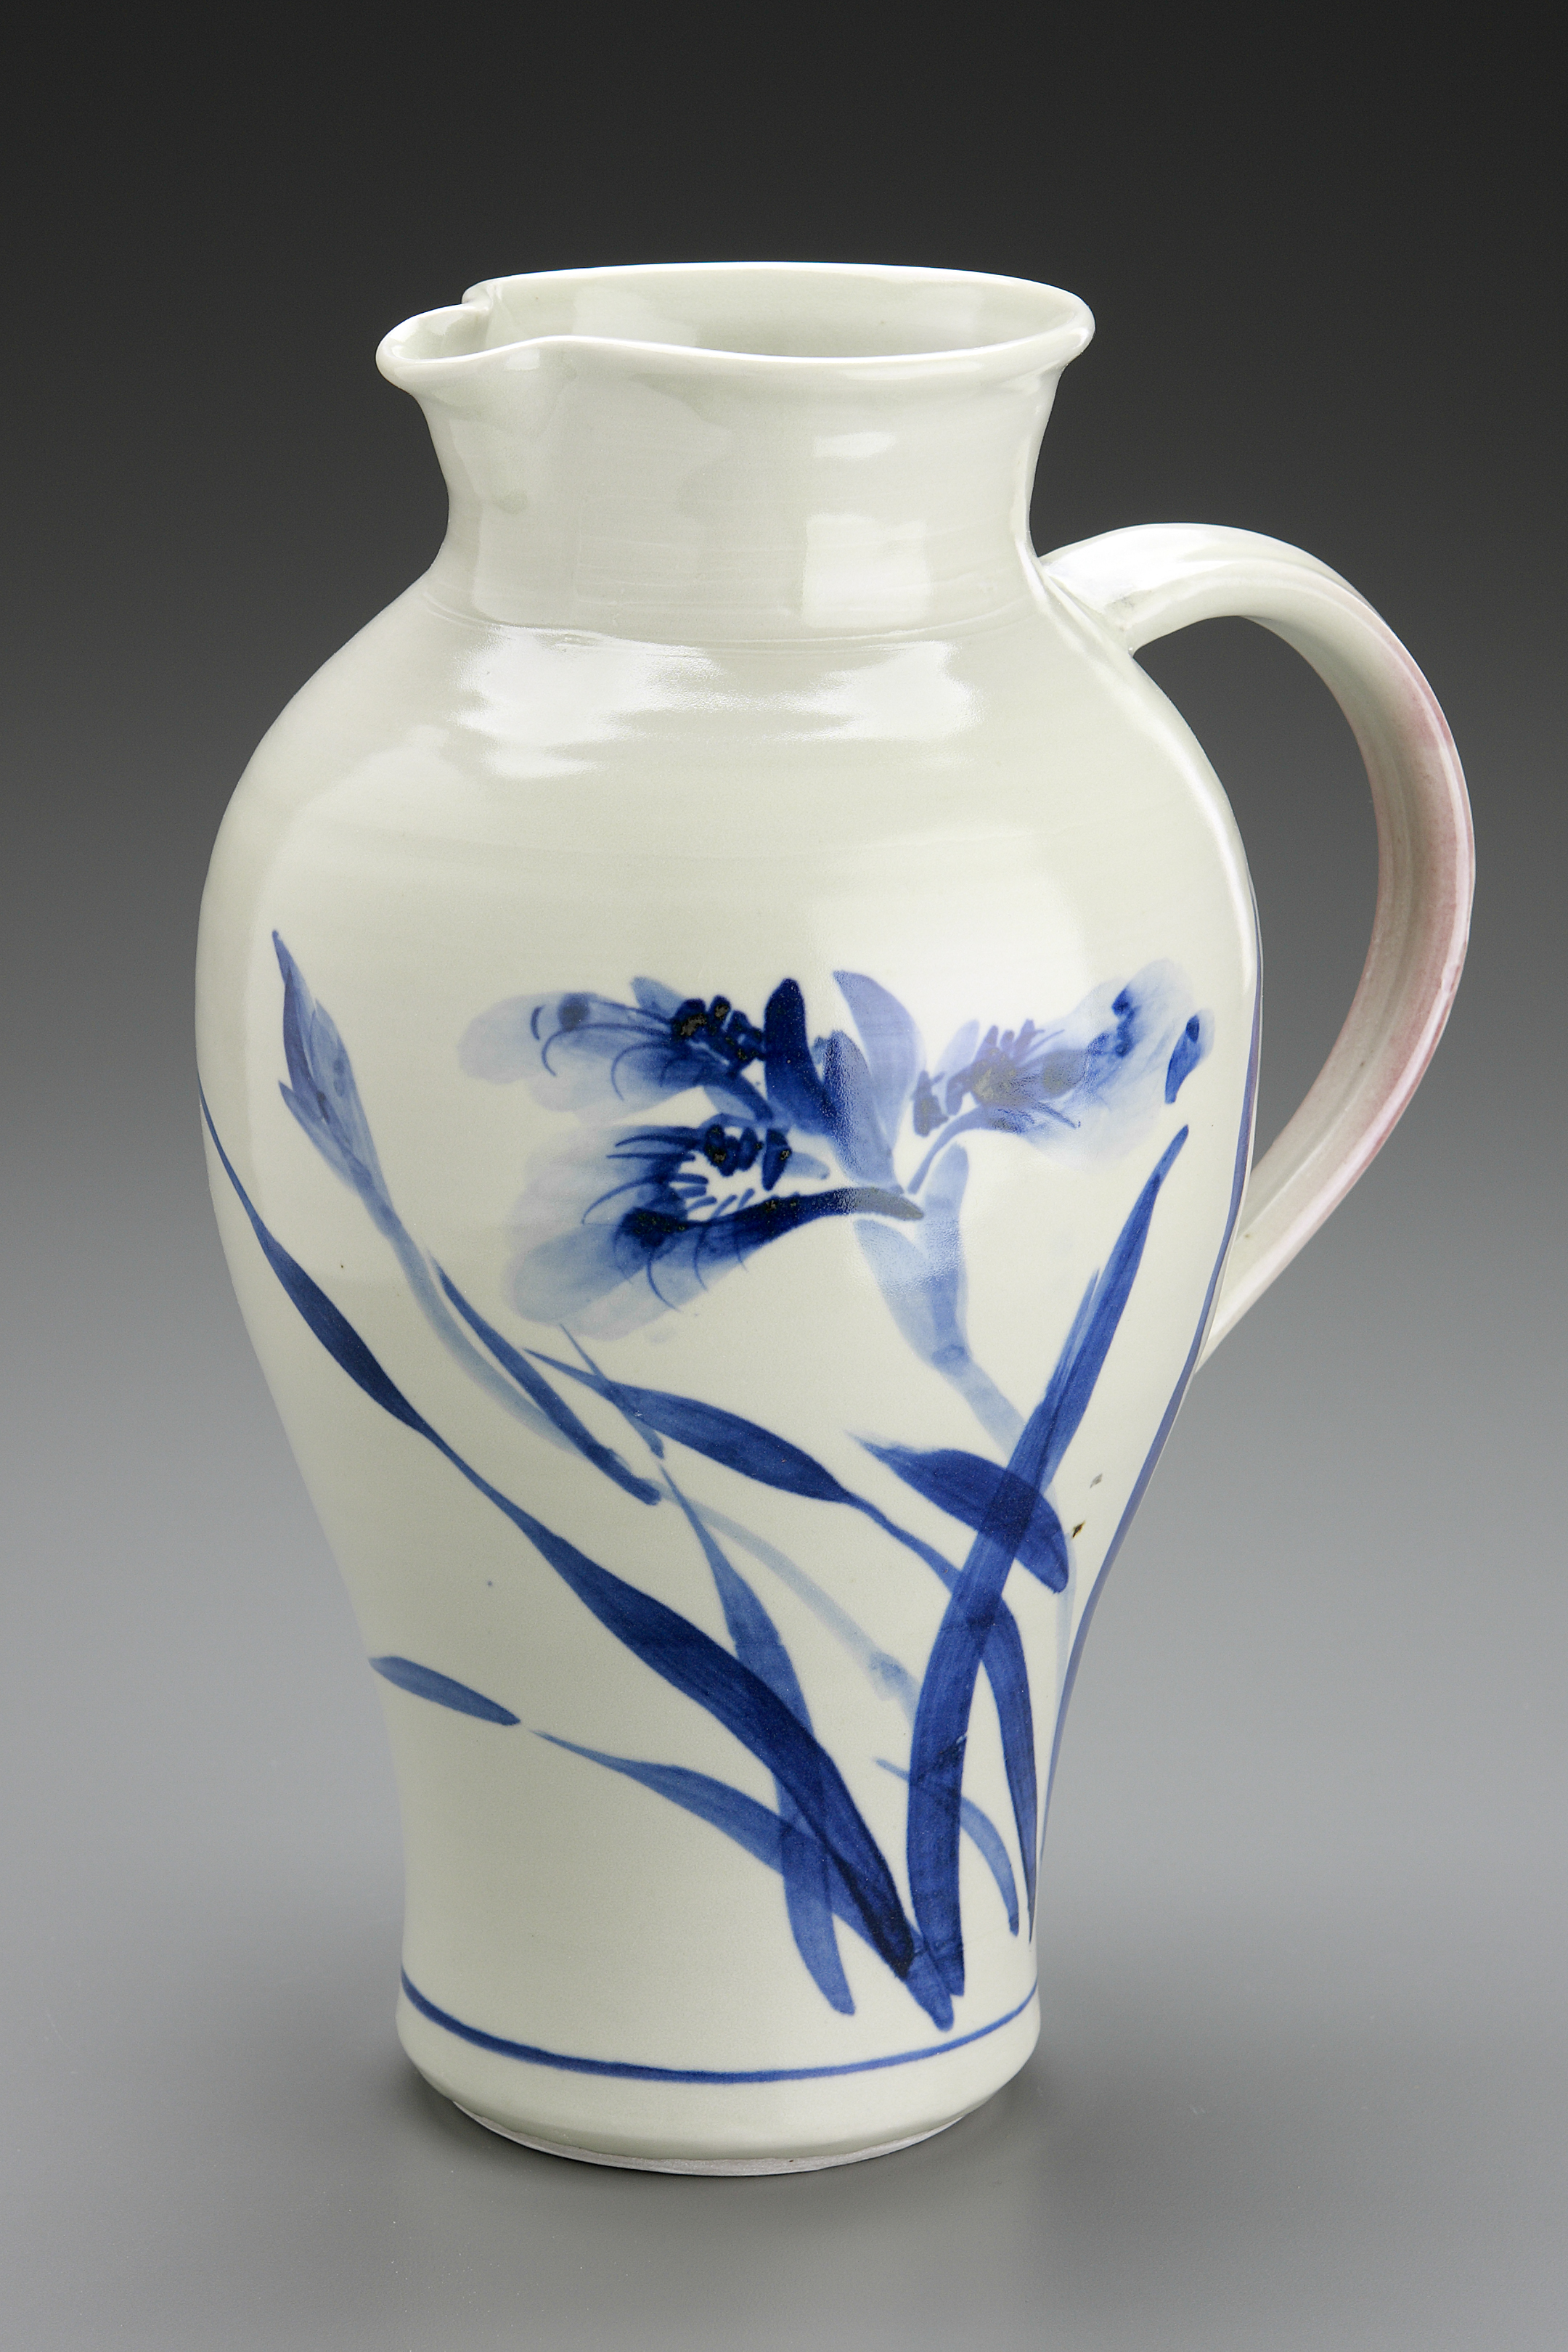 Pitcher with Iris